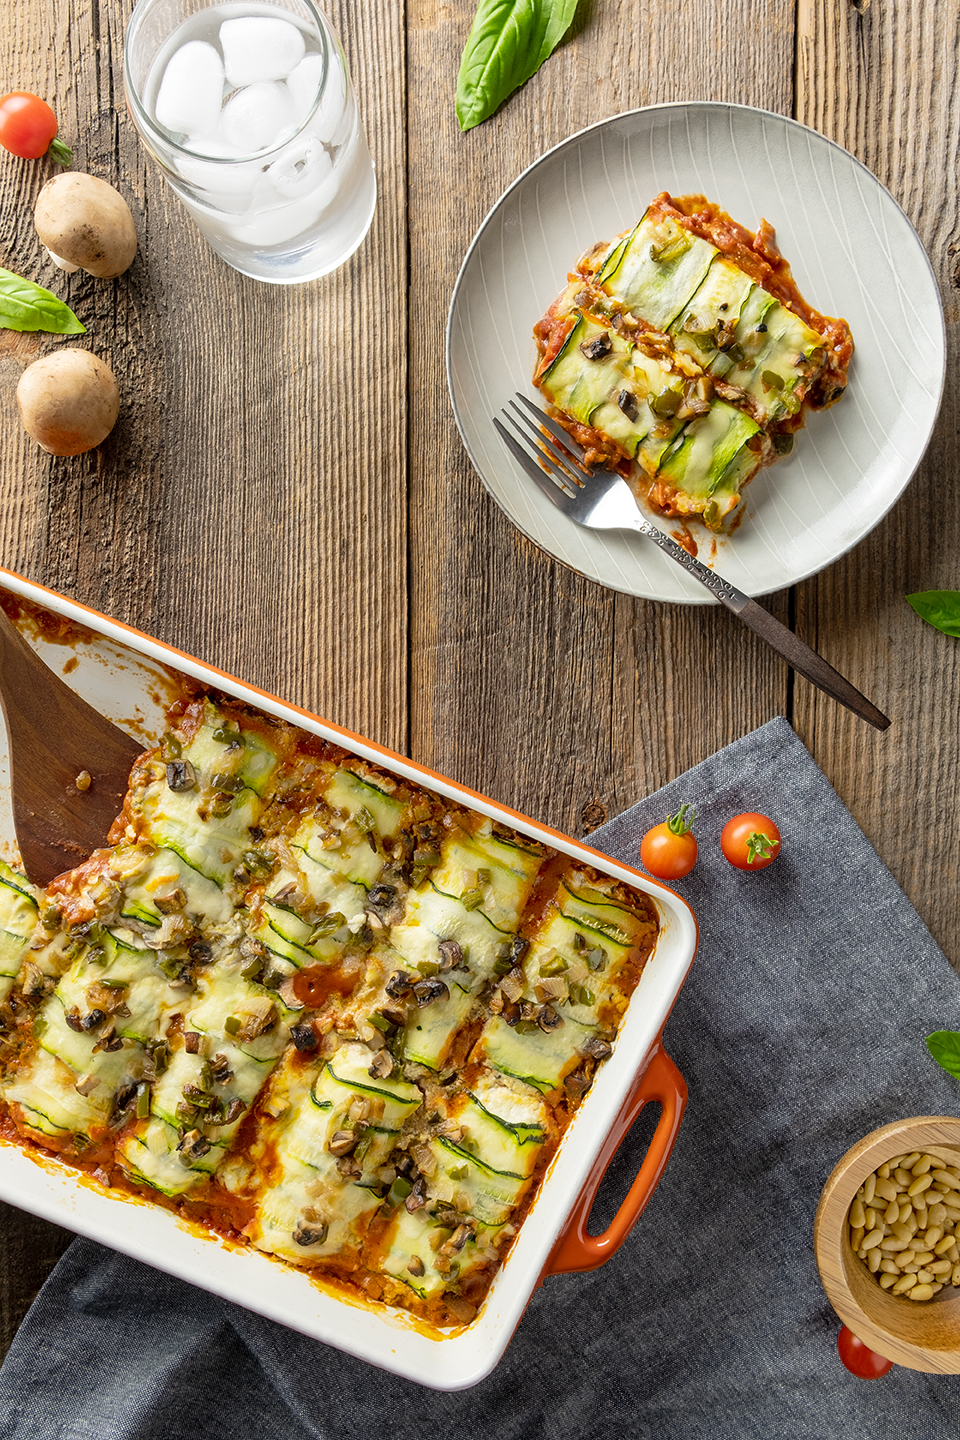 Low carb zucchini and ricotta cannelloni and grey plate with glass of ice water and mushrooms.